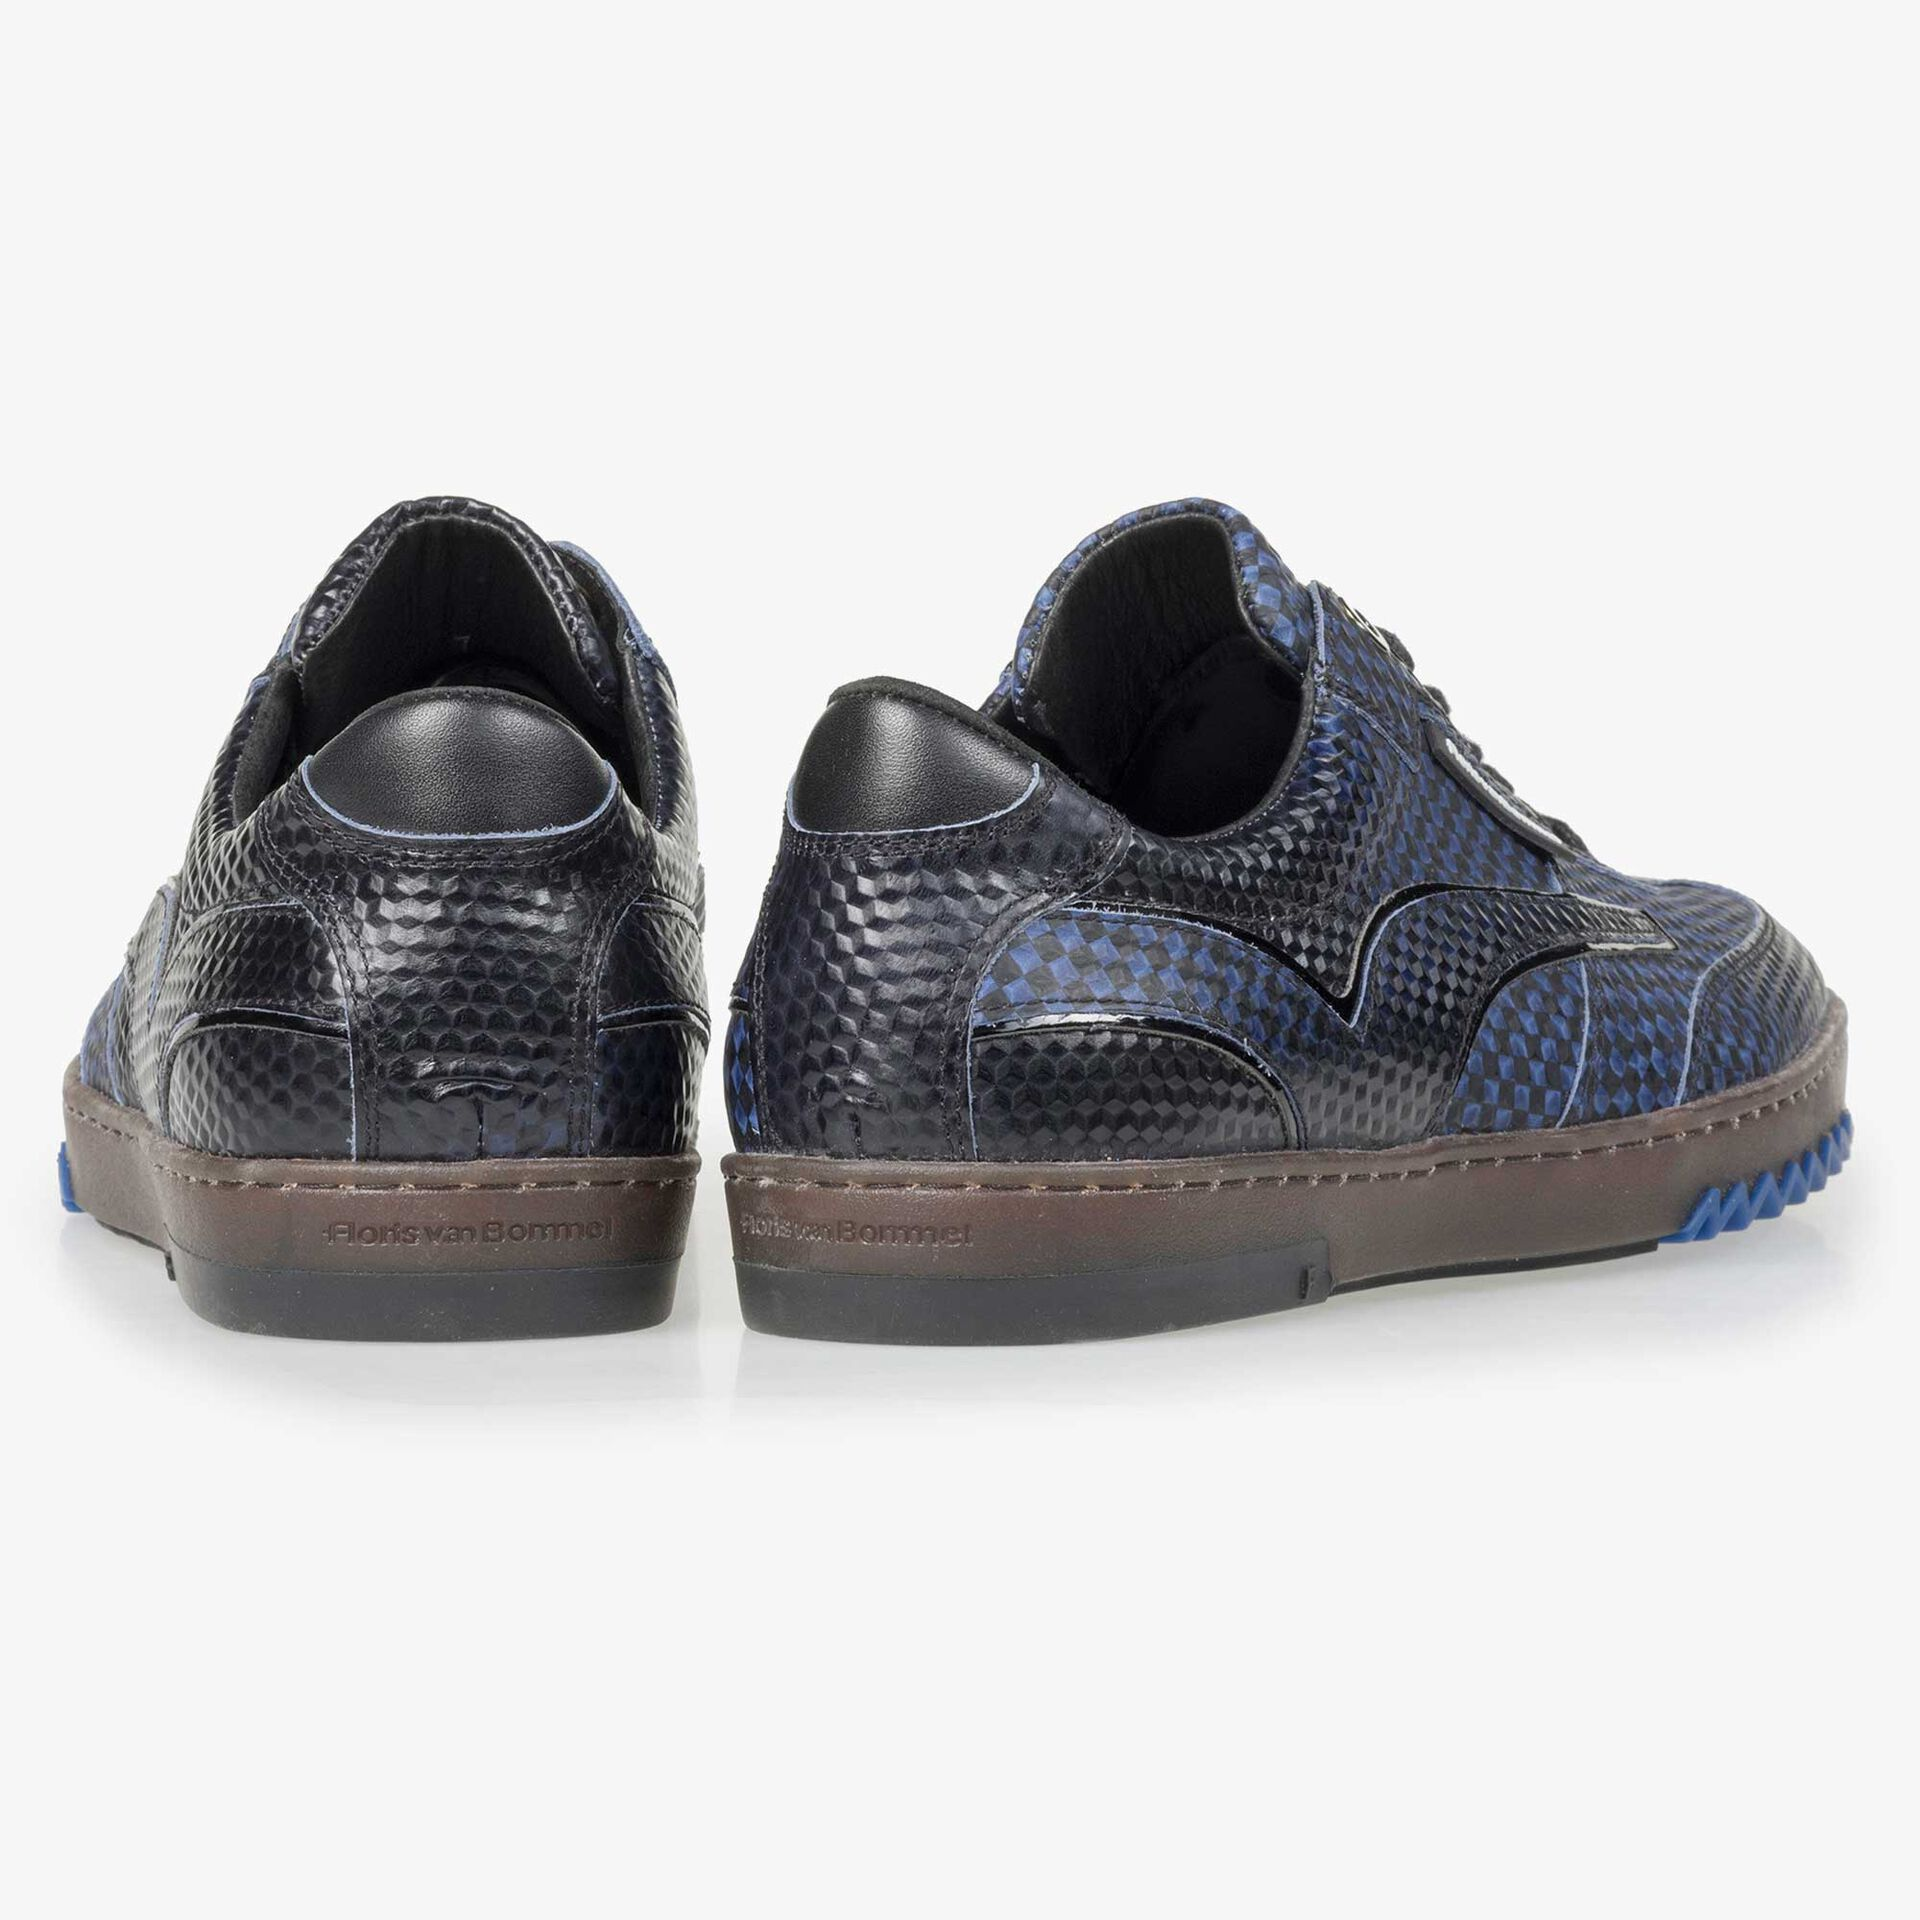 Floris van Bommel men's dark blue sneaker finished with a black print